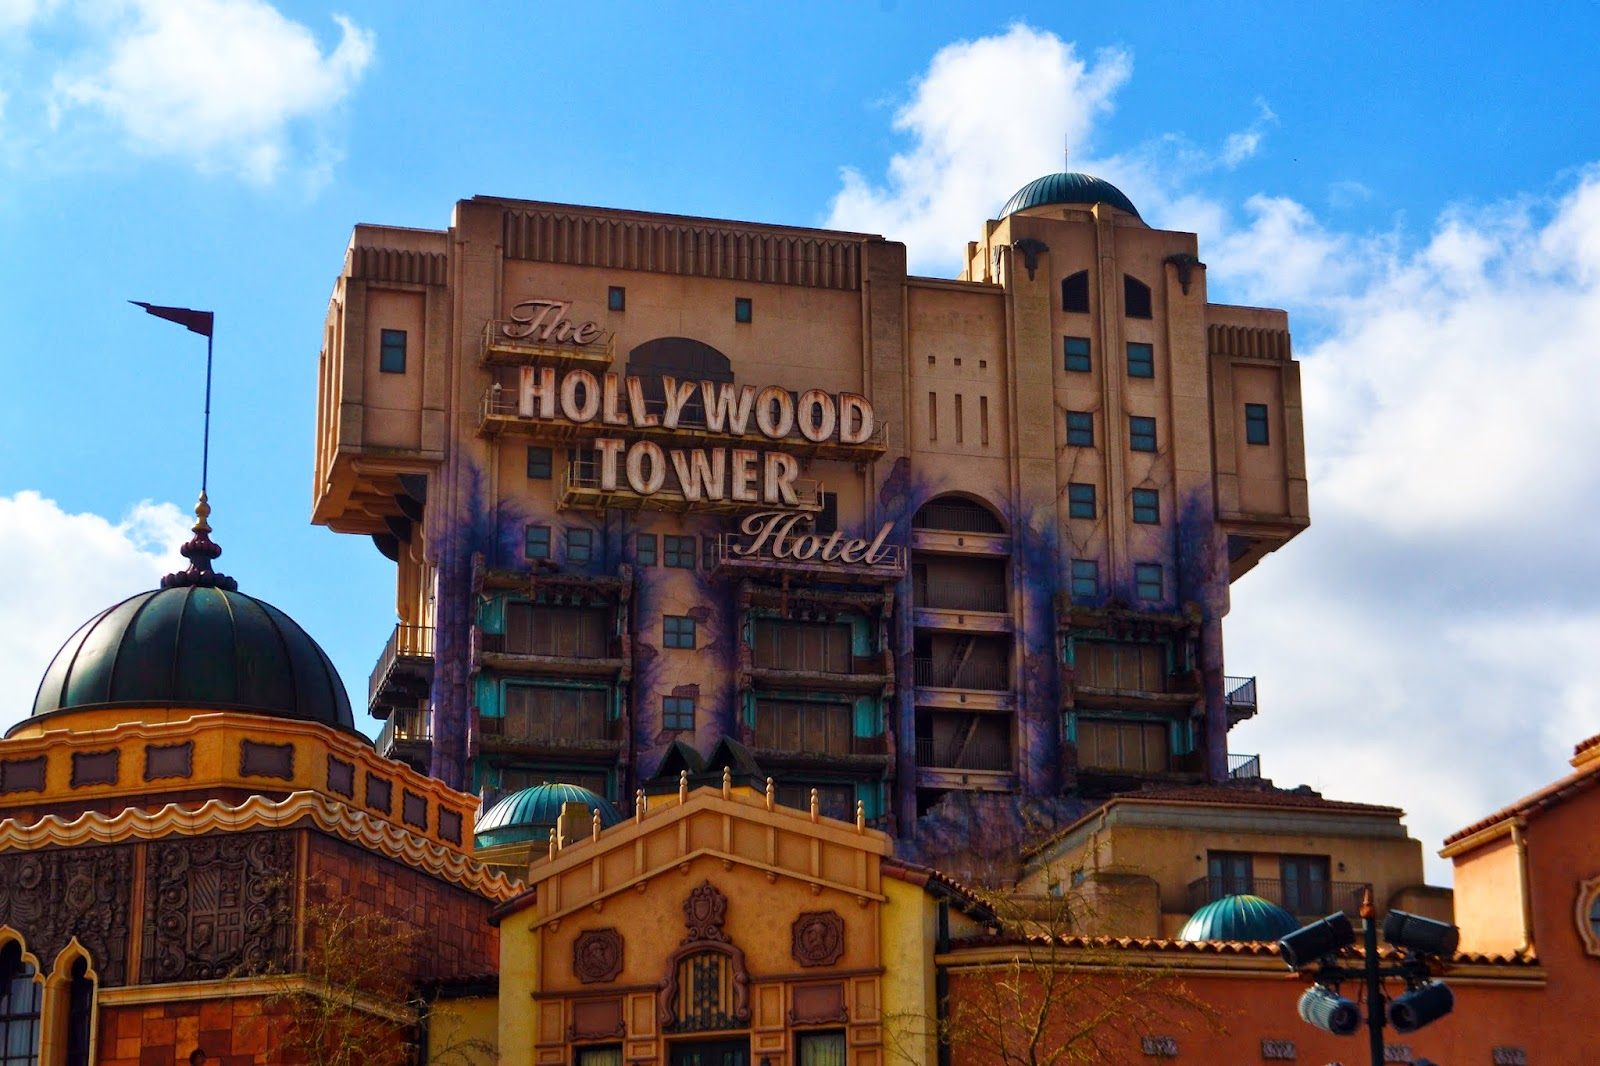 The hollywood tower of terror inside the Disney Studios